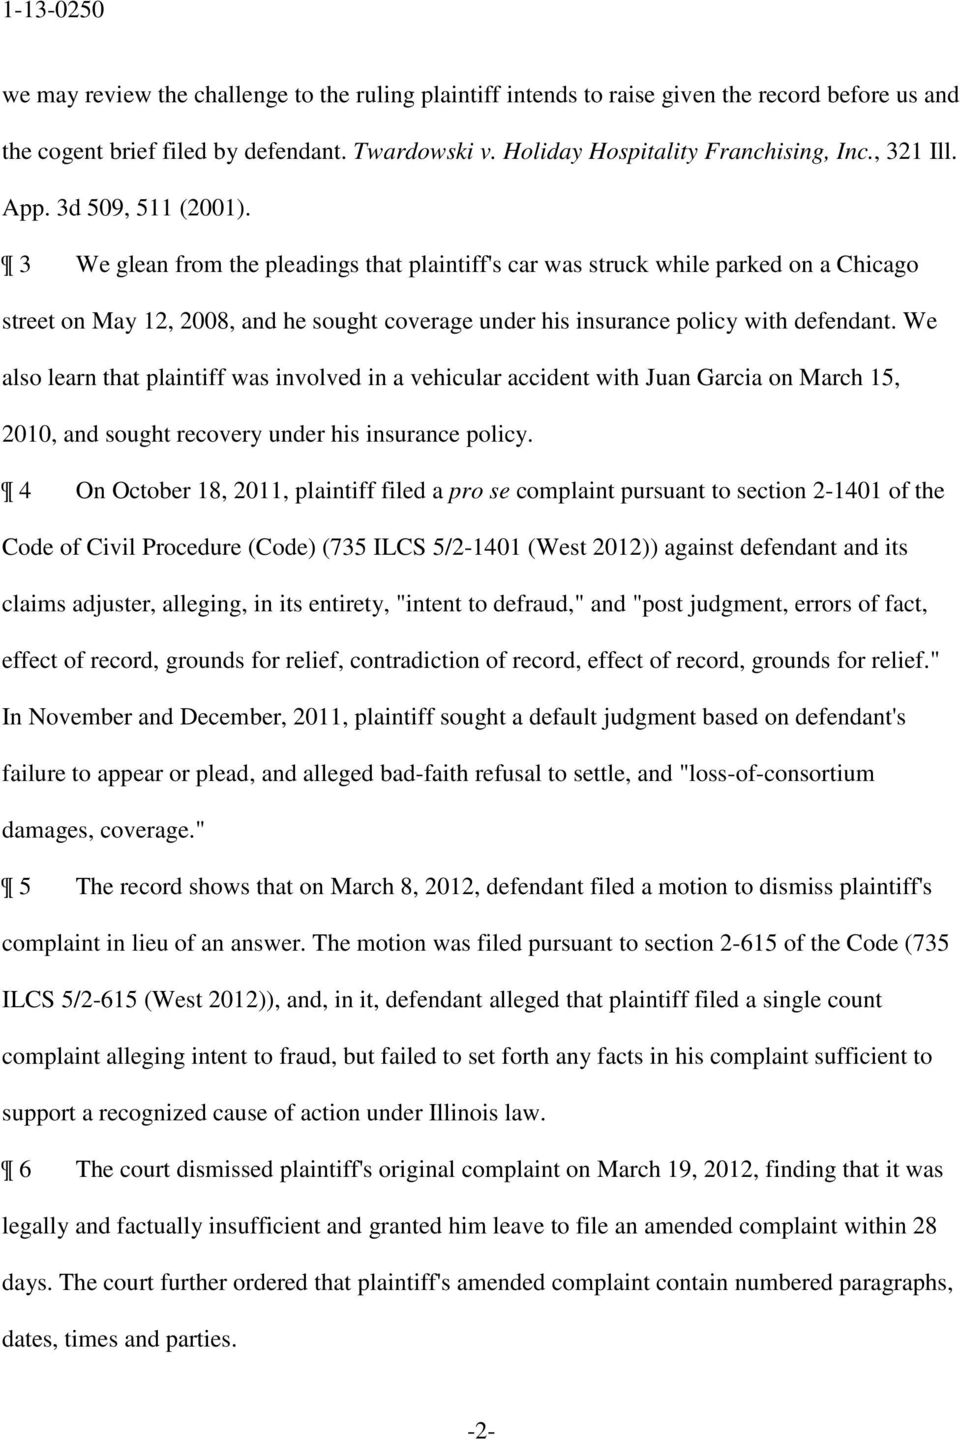 3 We glean from the pleadings that plaintiff's car was struck while parked on a Chicago street on May 12, 2008, and he sought coverage under his insurance policy with defendant.